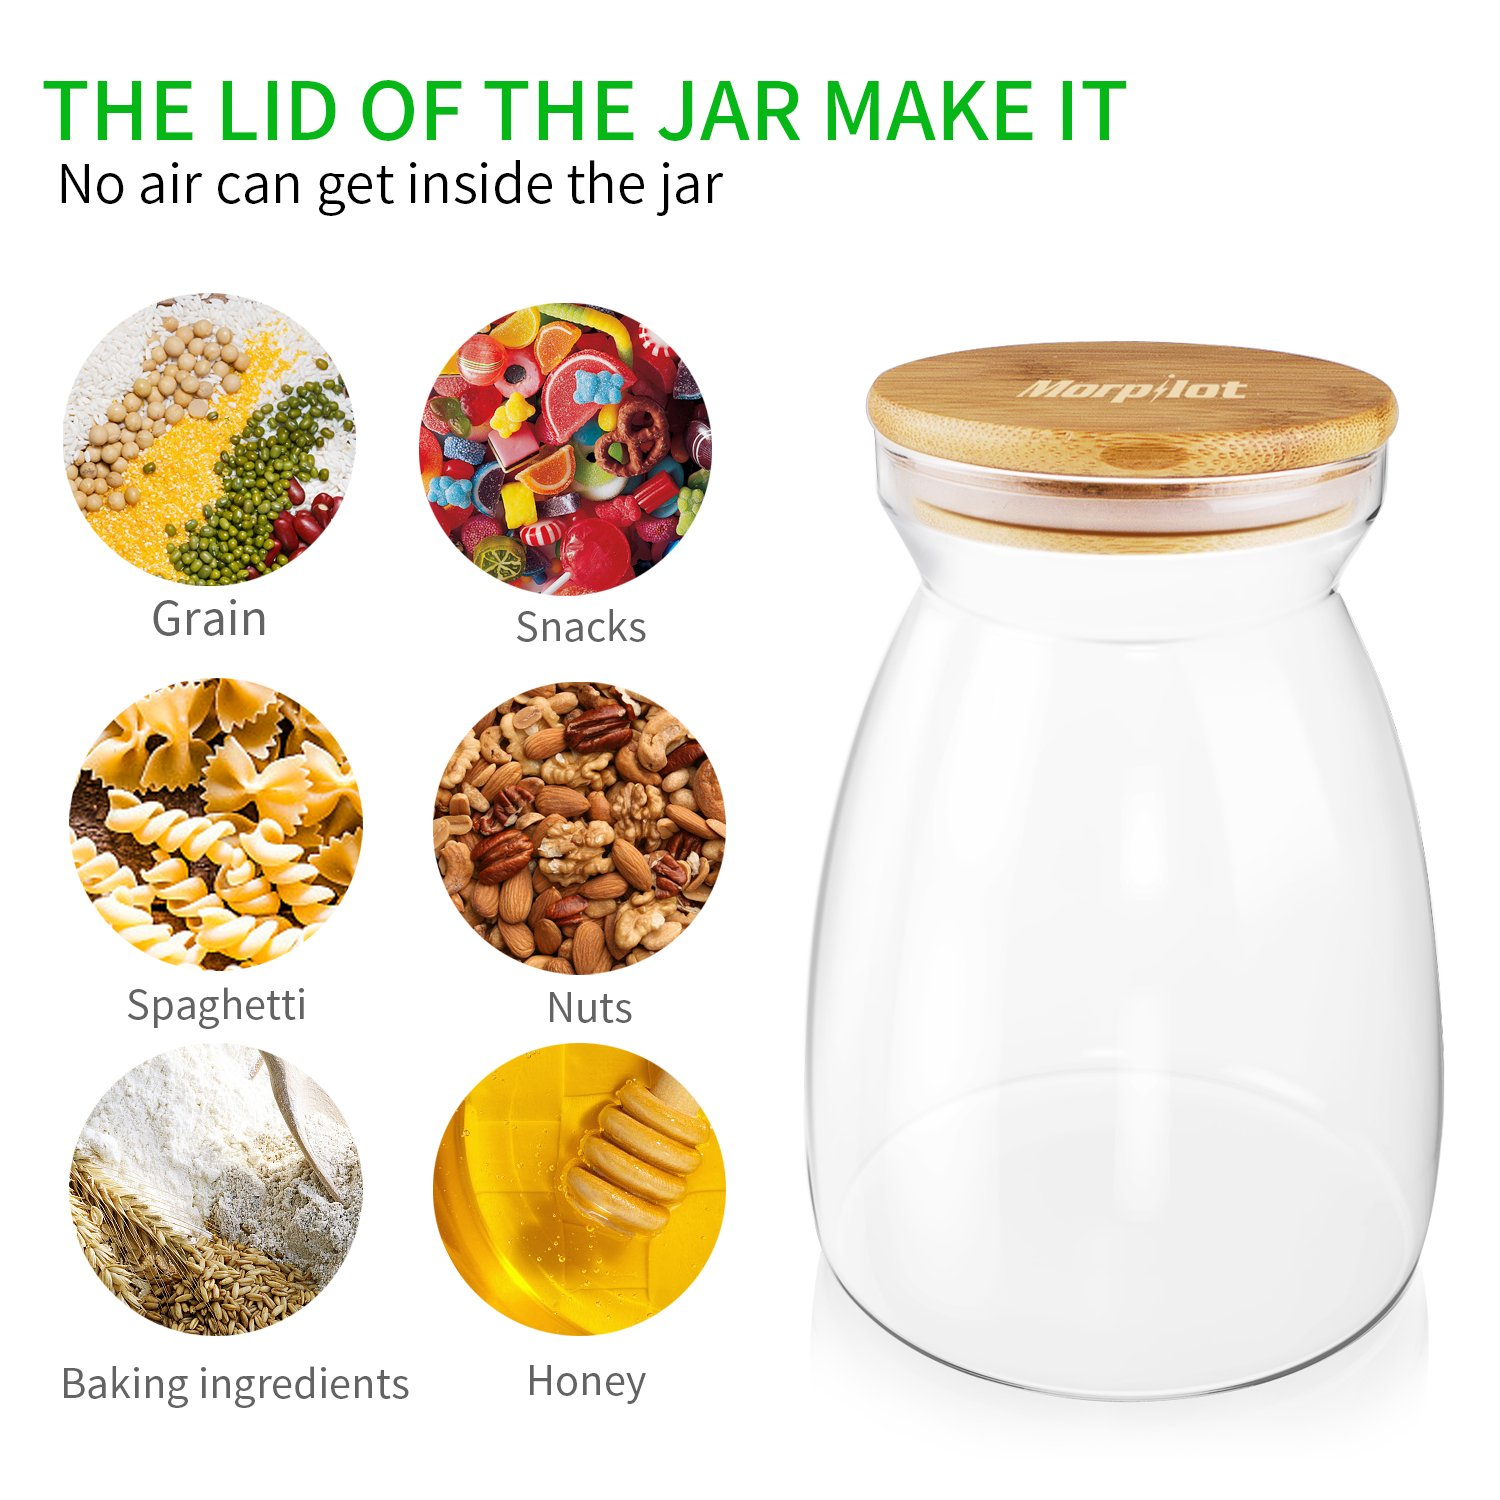 Morpilot Glass Storage Jars 1100ml for Tea Coffee Sugar Biscuit Storage,Clear Glass Food Storage Jar with Silicone Seal Ring Bamboo Lid by Morpilot (Image #5)